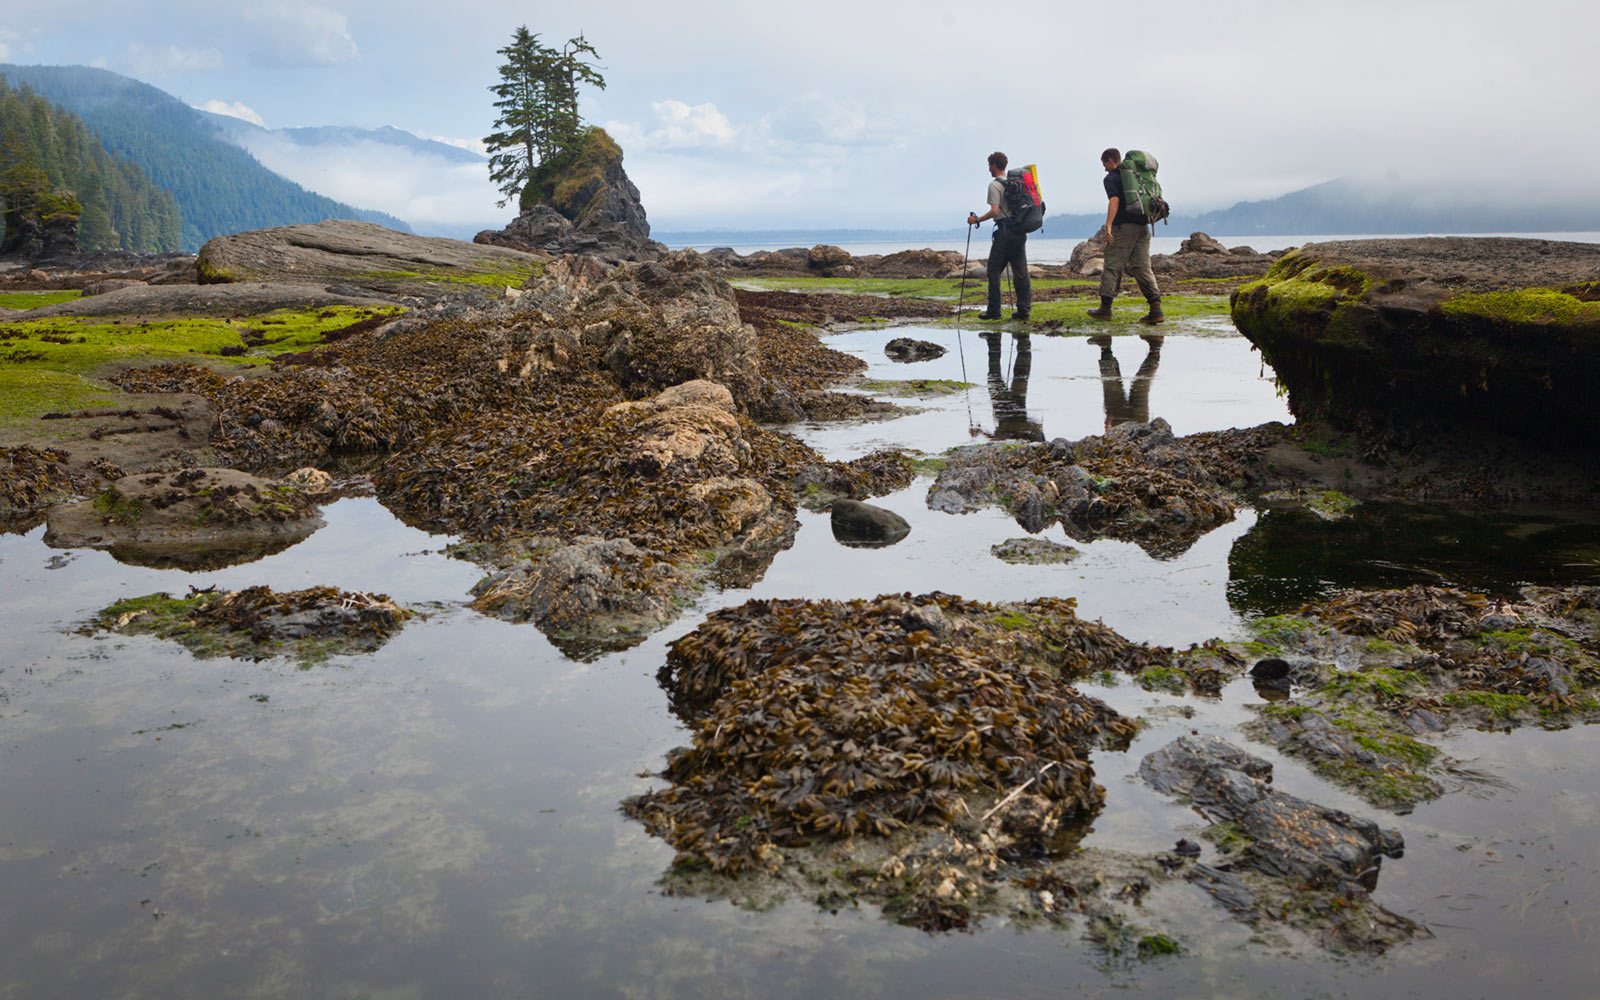 Hikers, Kellet Rock, West Coast Trail, Vancouver Island, British Columbia, Canada